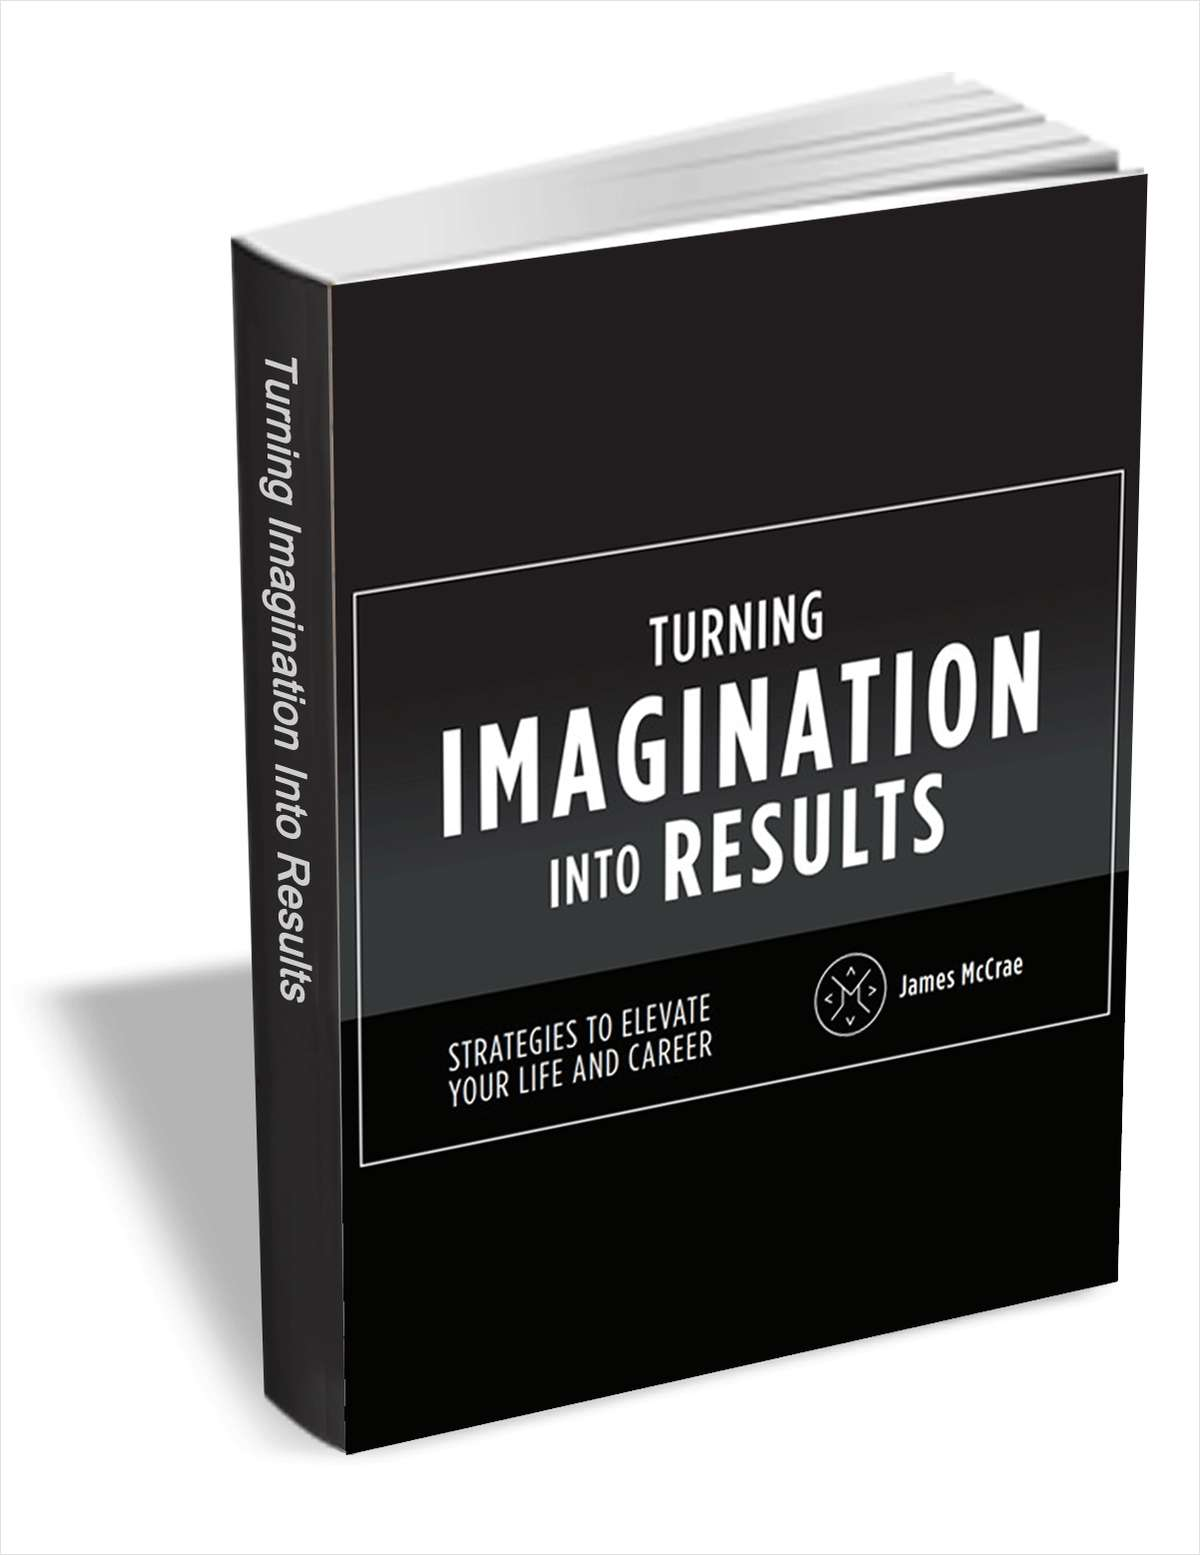 Turning Imagination into Results - Strategies to Elevate your Life and Career